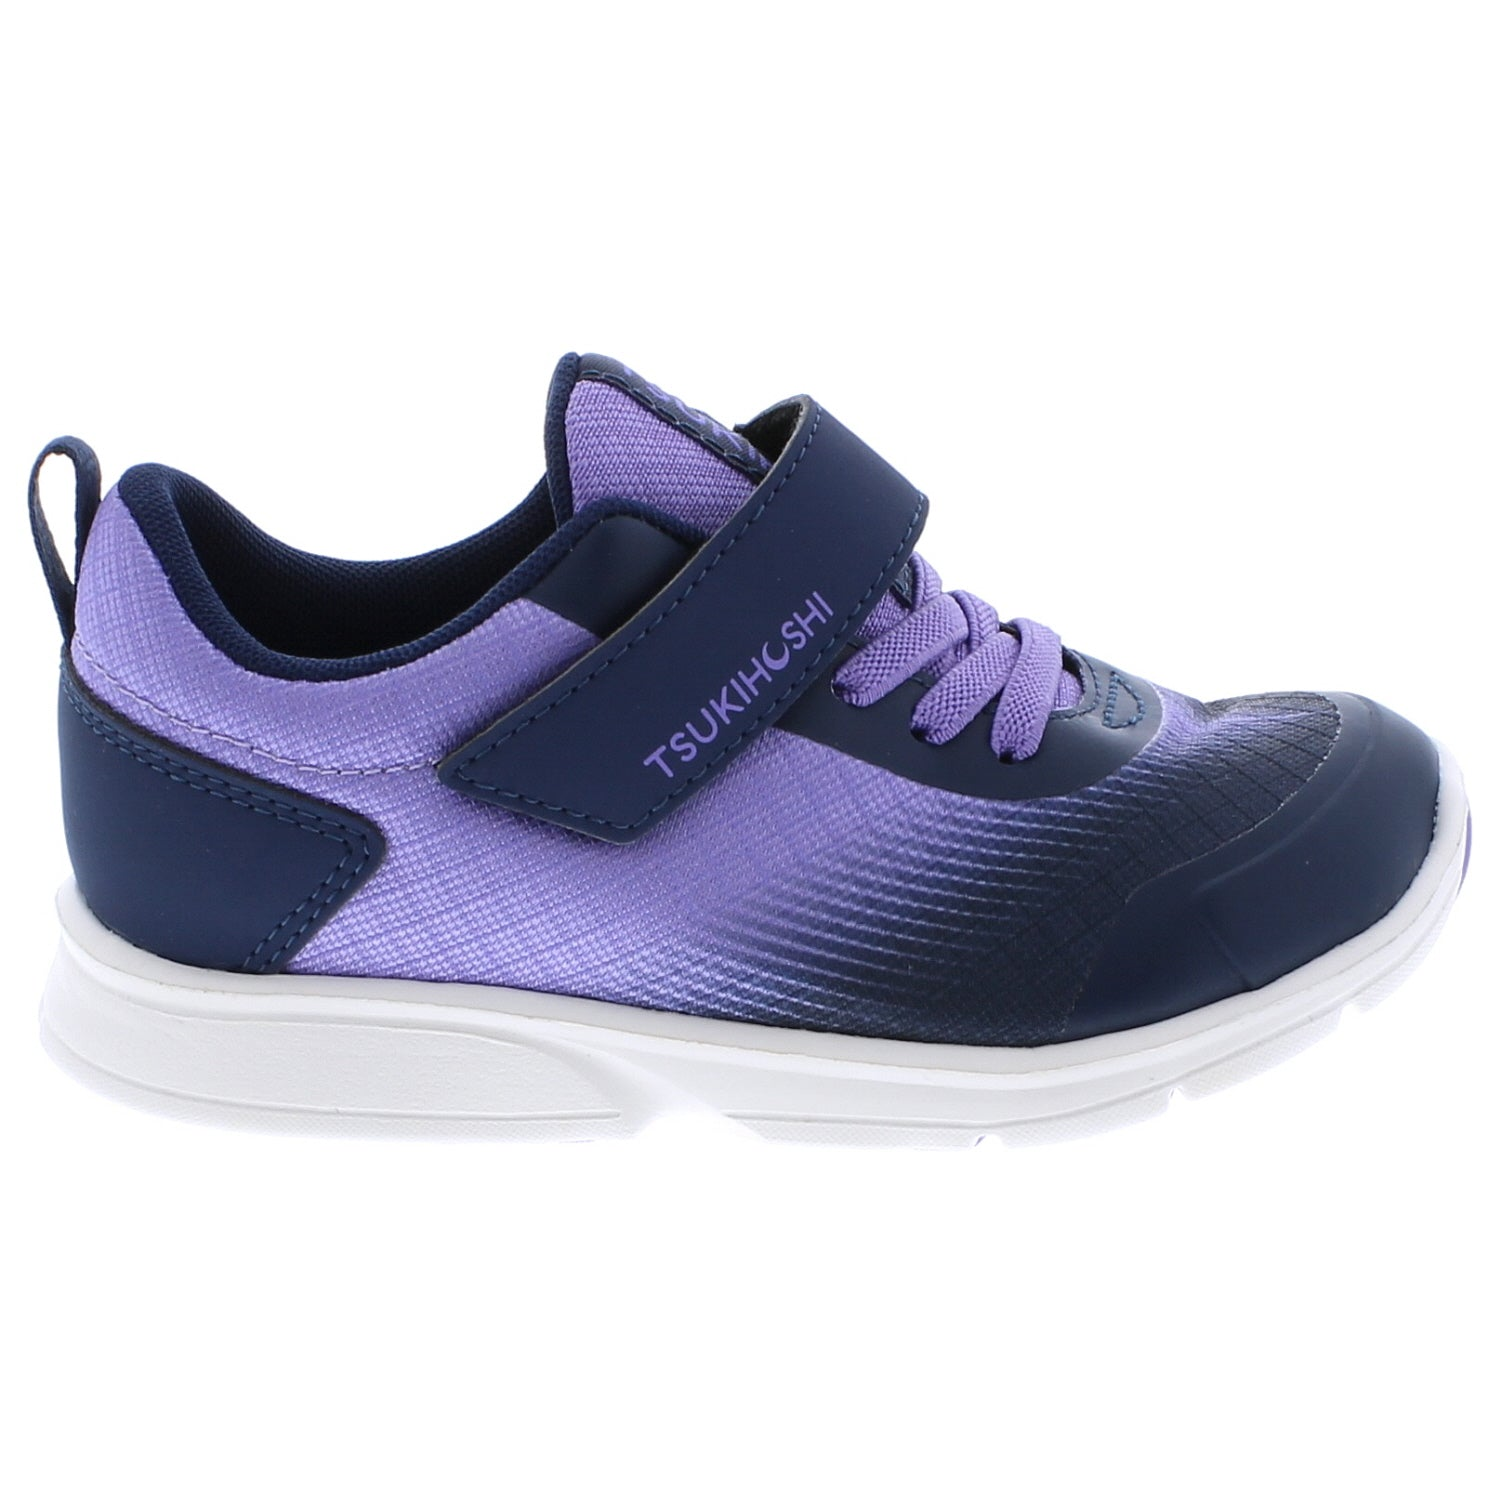 Turbo - Purple / Navy by Tsukihoshi - Ponseti's Shoes